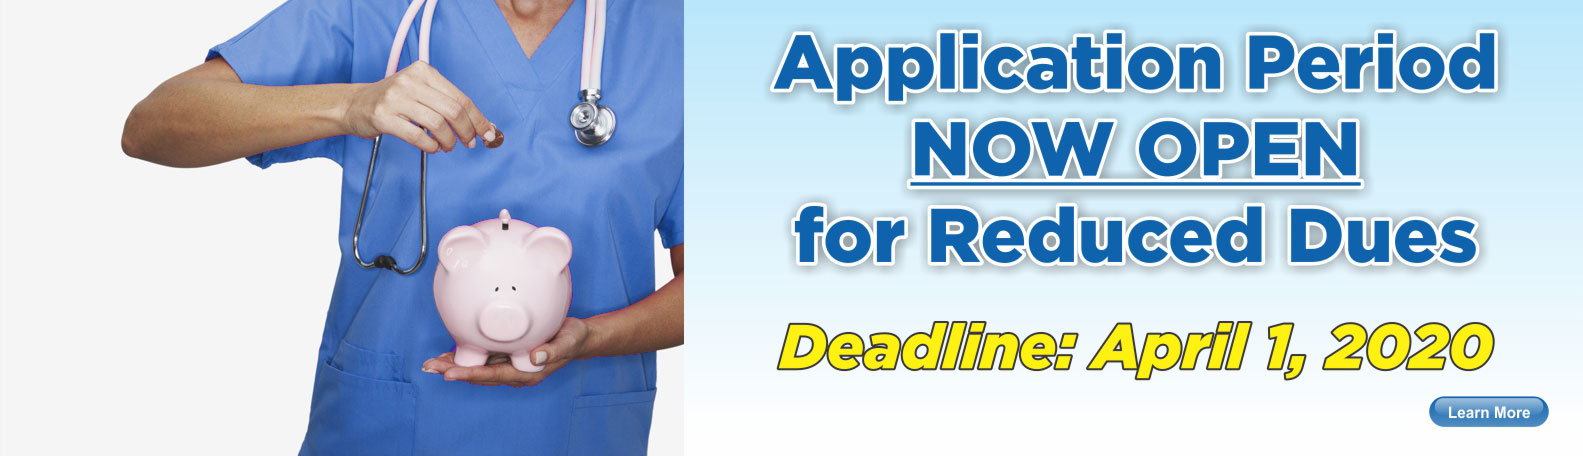 Reduced Dues Application Period Now Open